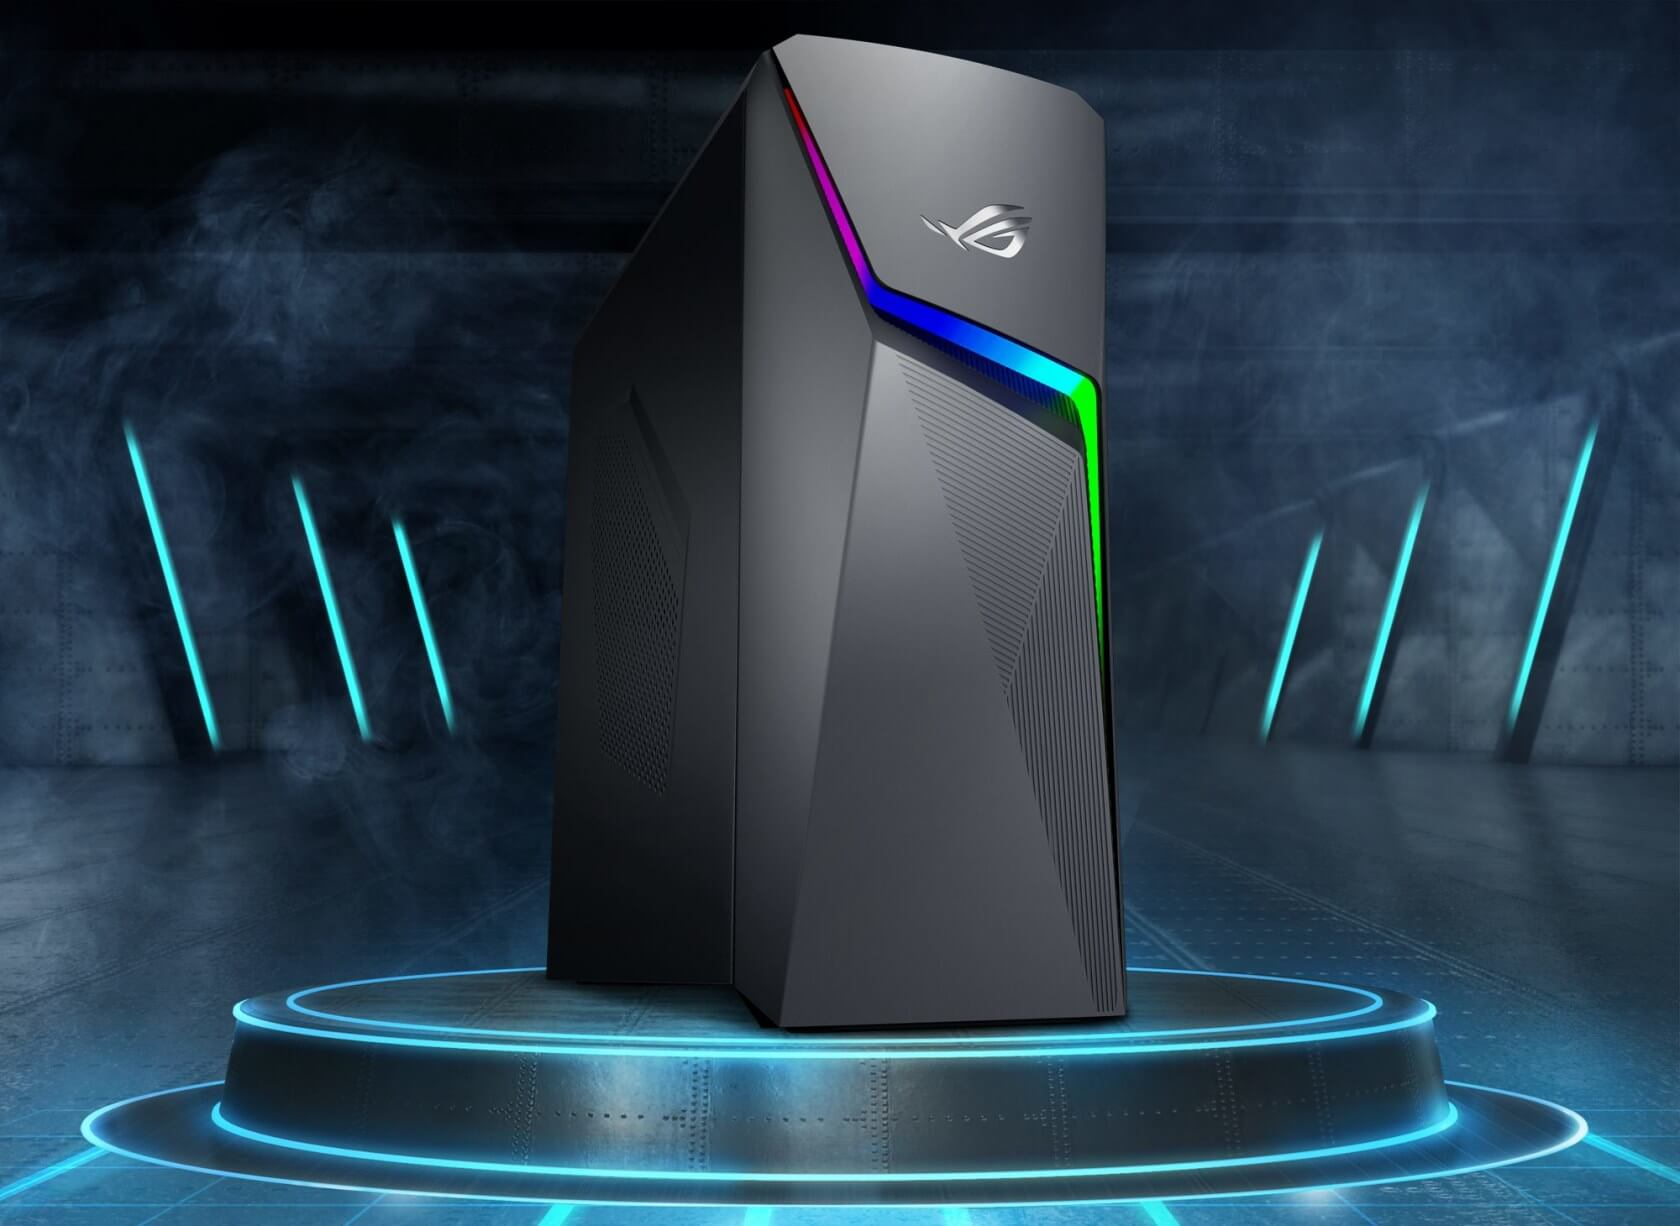 Asus announces the 'ROG Strix GL10CS,' an 'affordable' compact PC with solid hardware